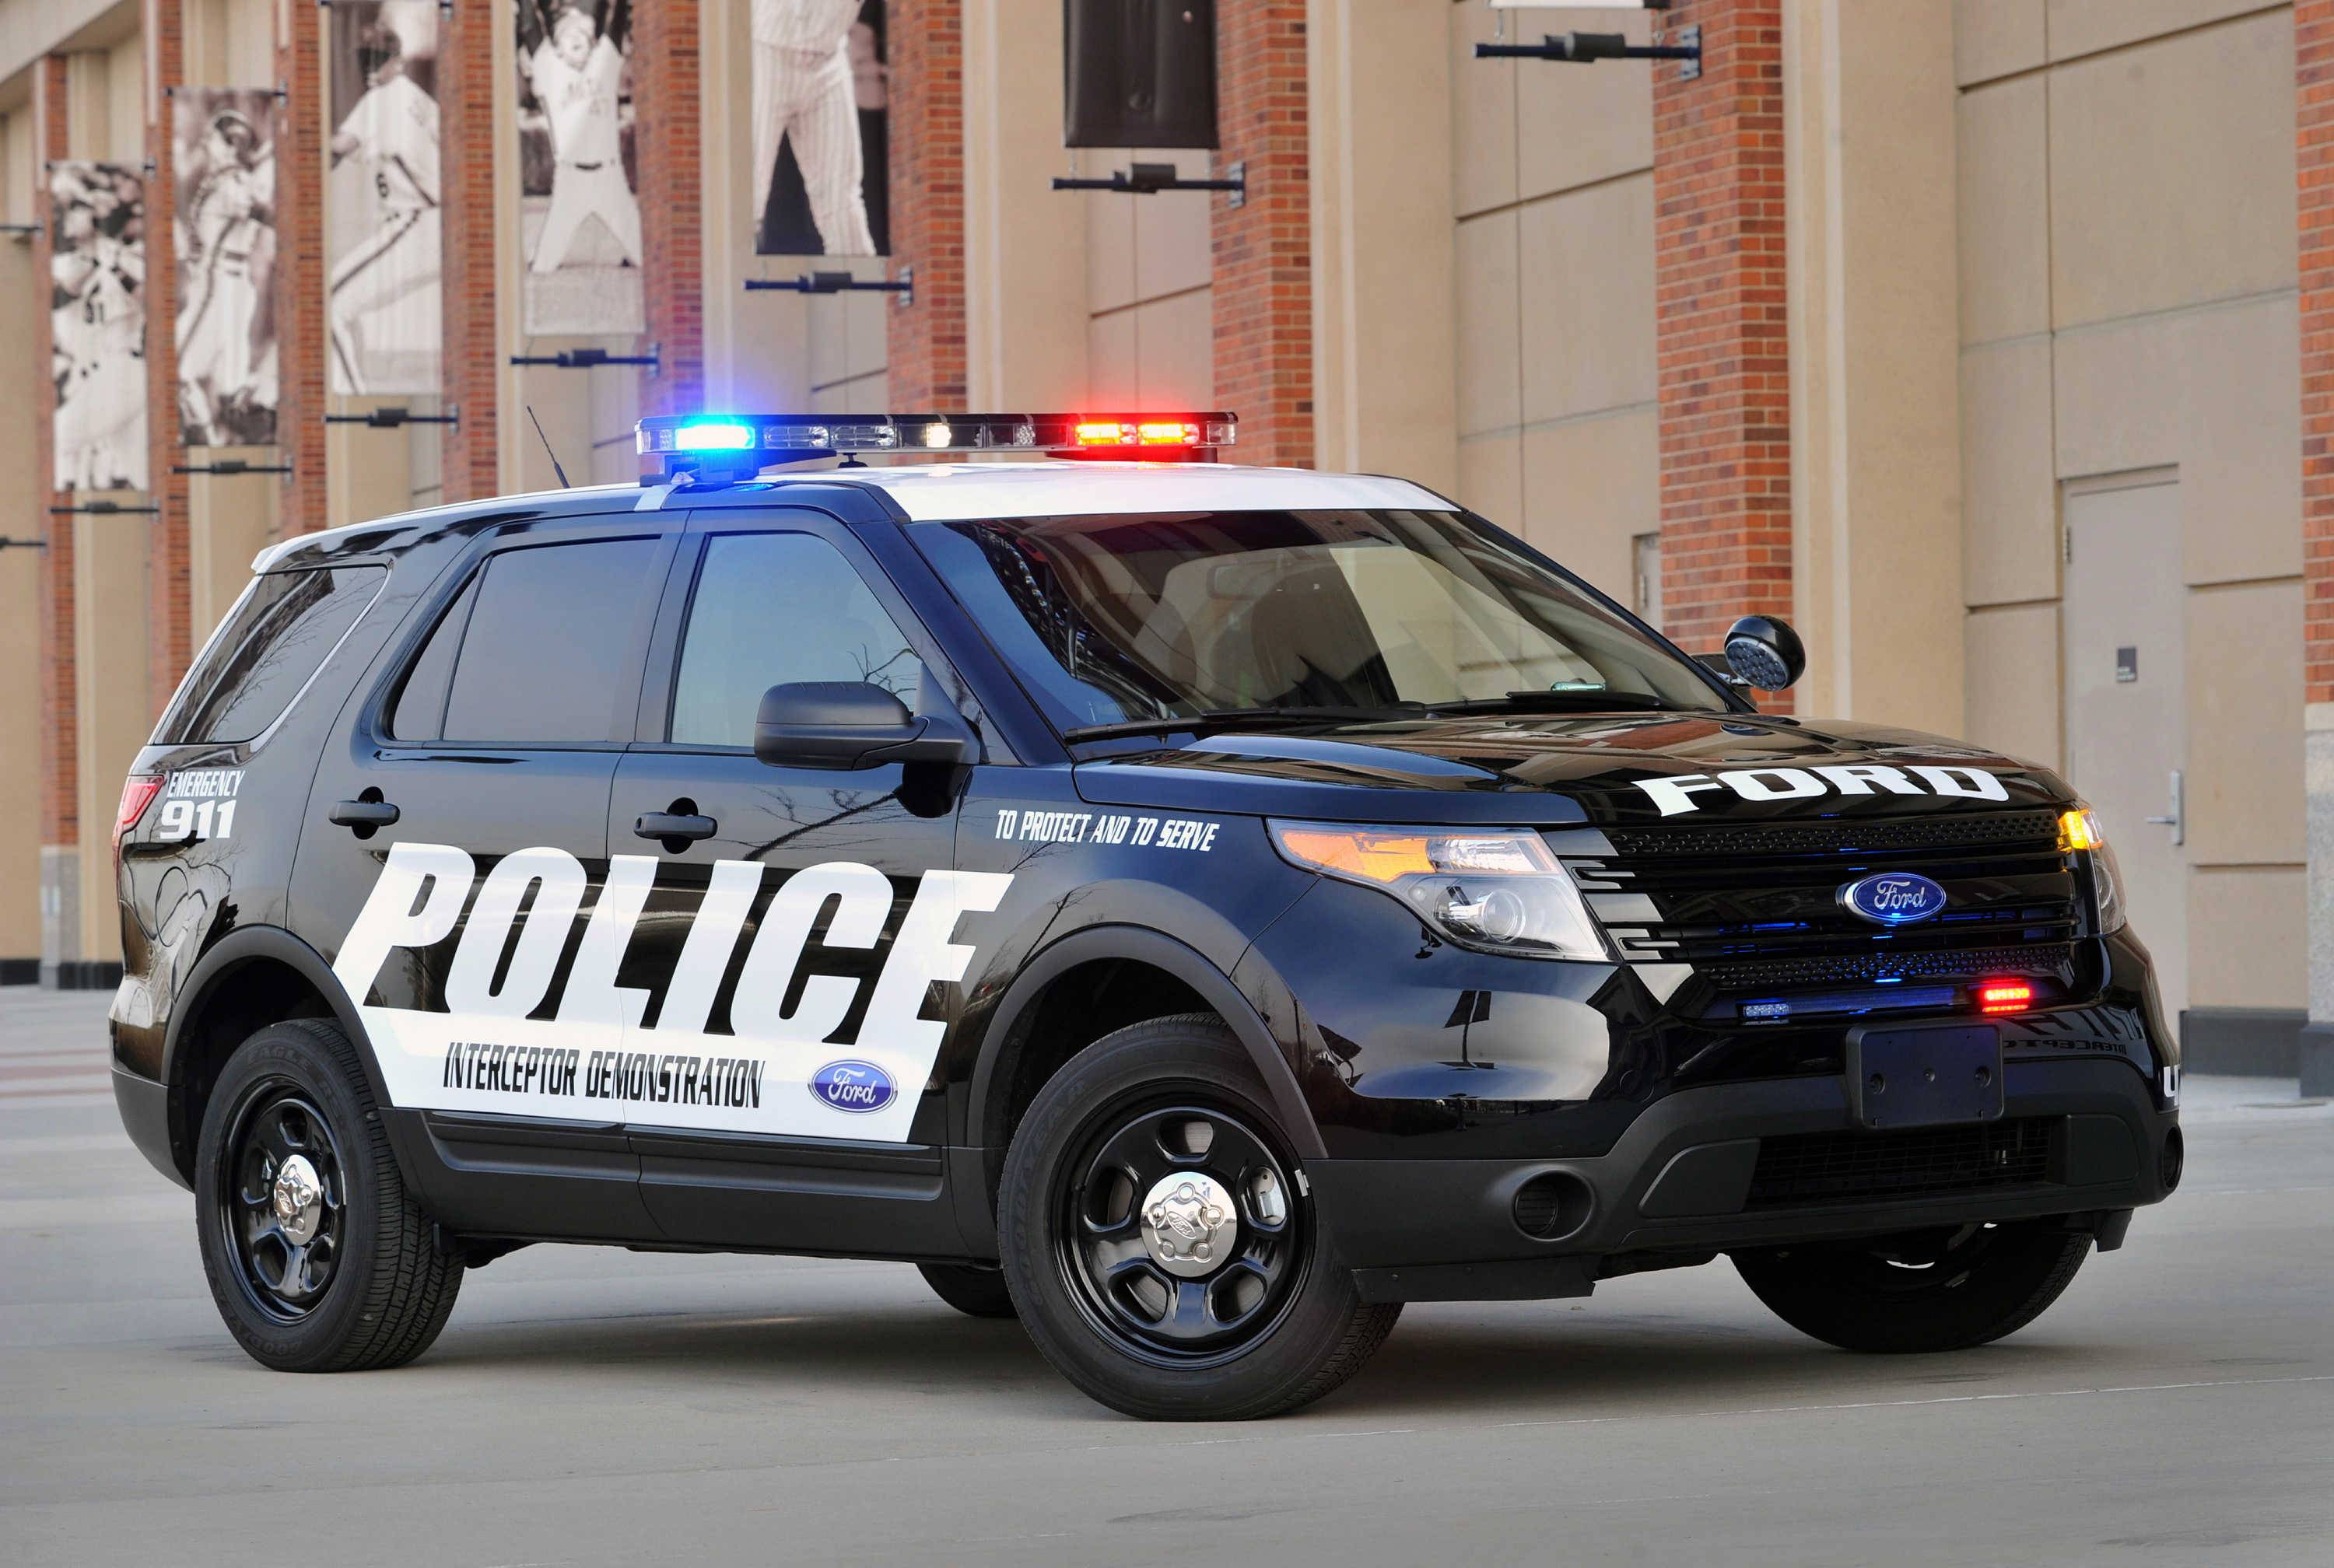 The new Ford Explorer Interceptor SUV is built for law enforcement. Elgin will purchase 10 similar to this one.